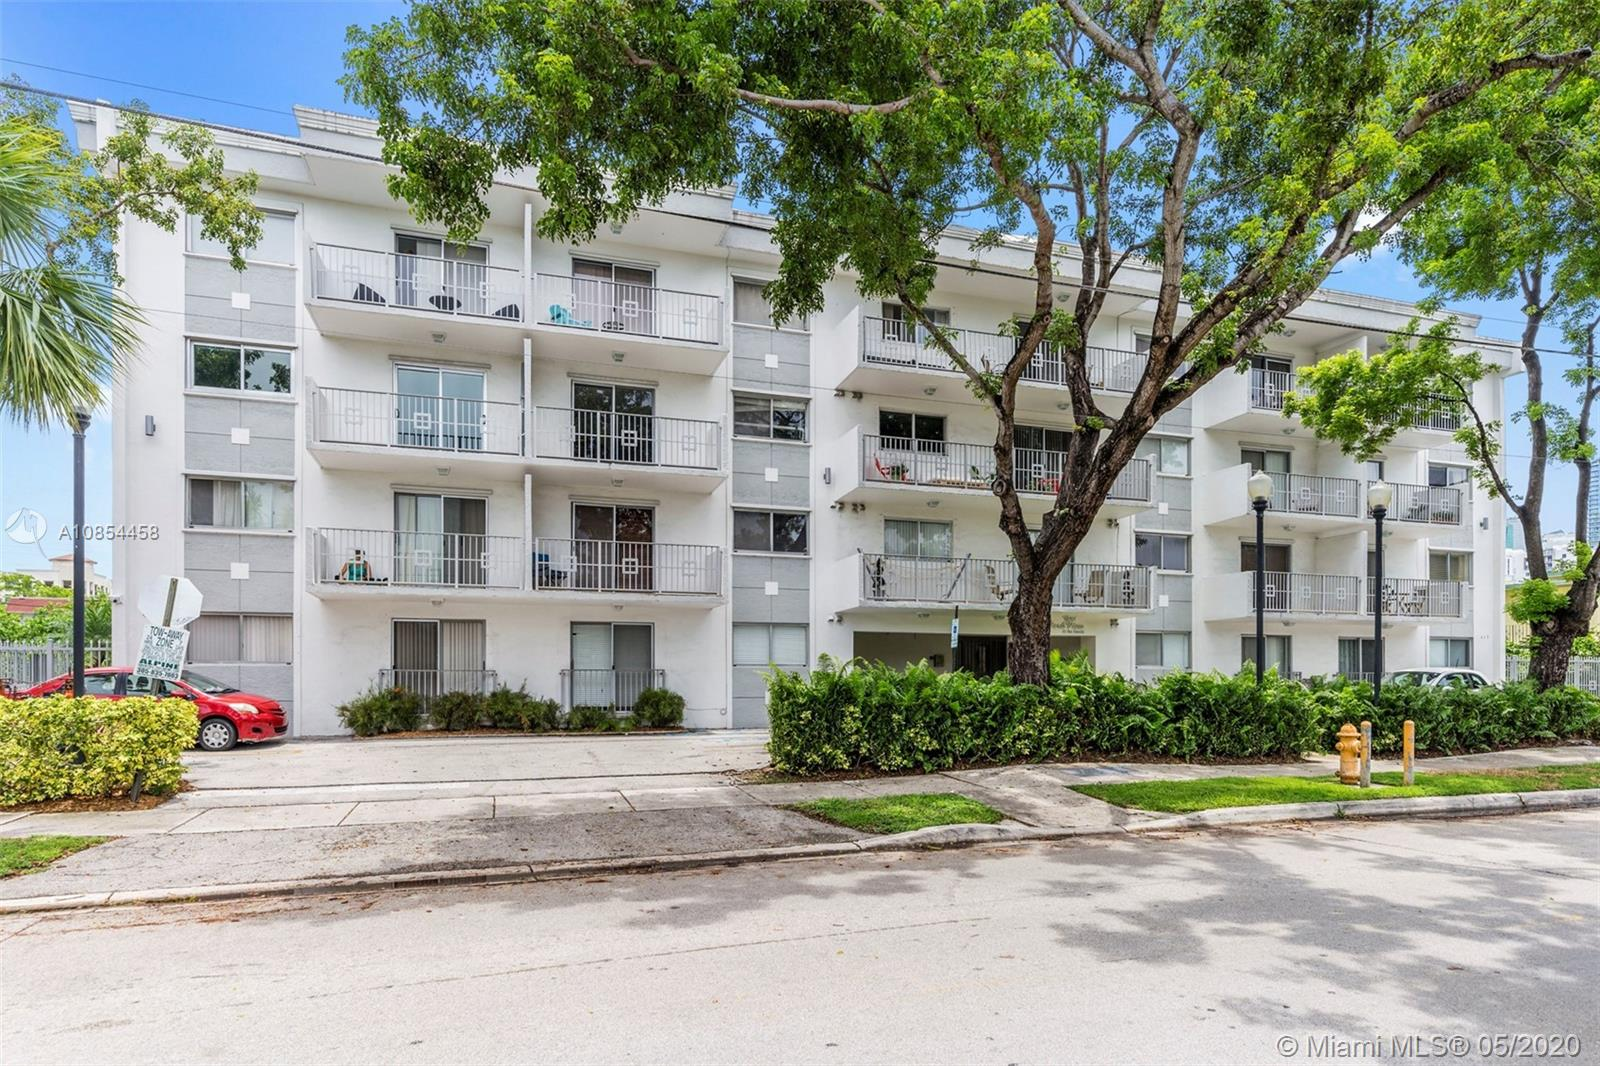 445 SW 11 St #401 For Sale A10854458, FL